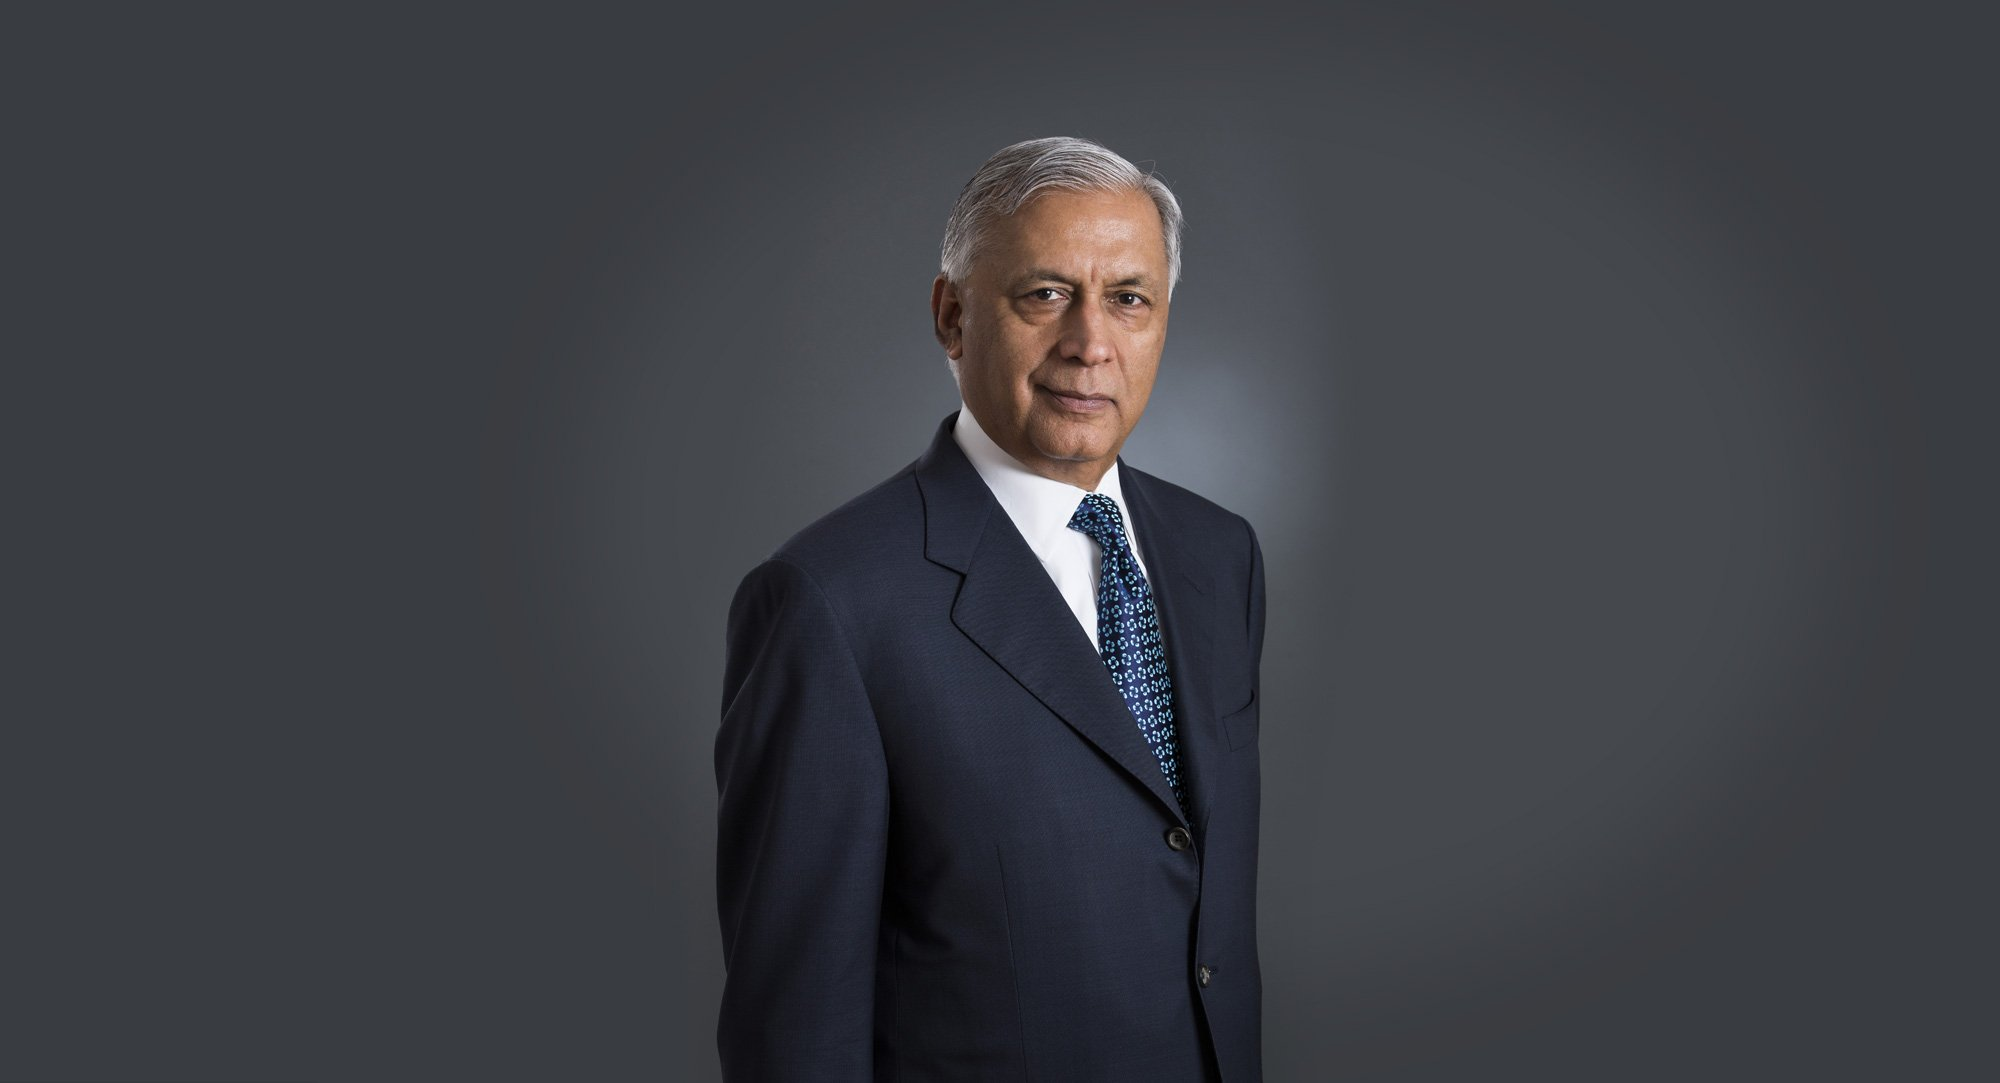 PHOTO: Shaukataziz.com